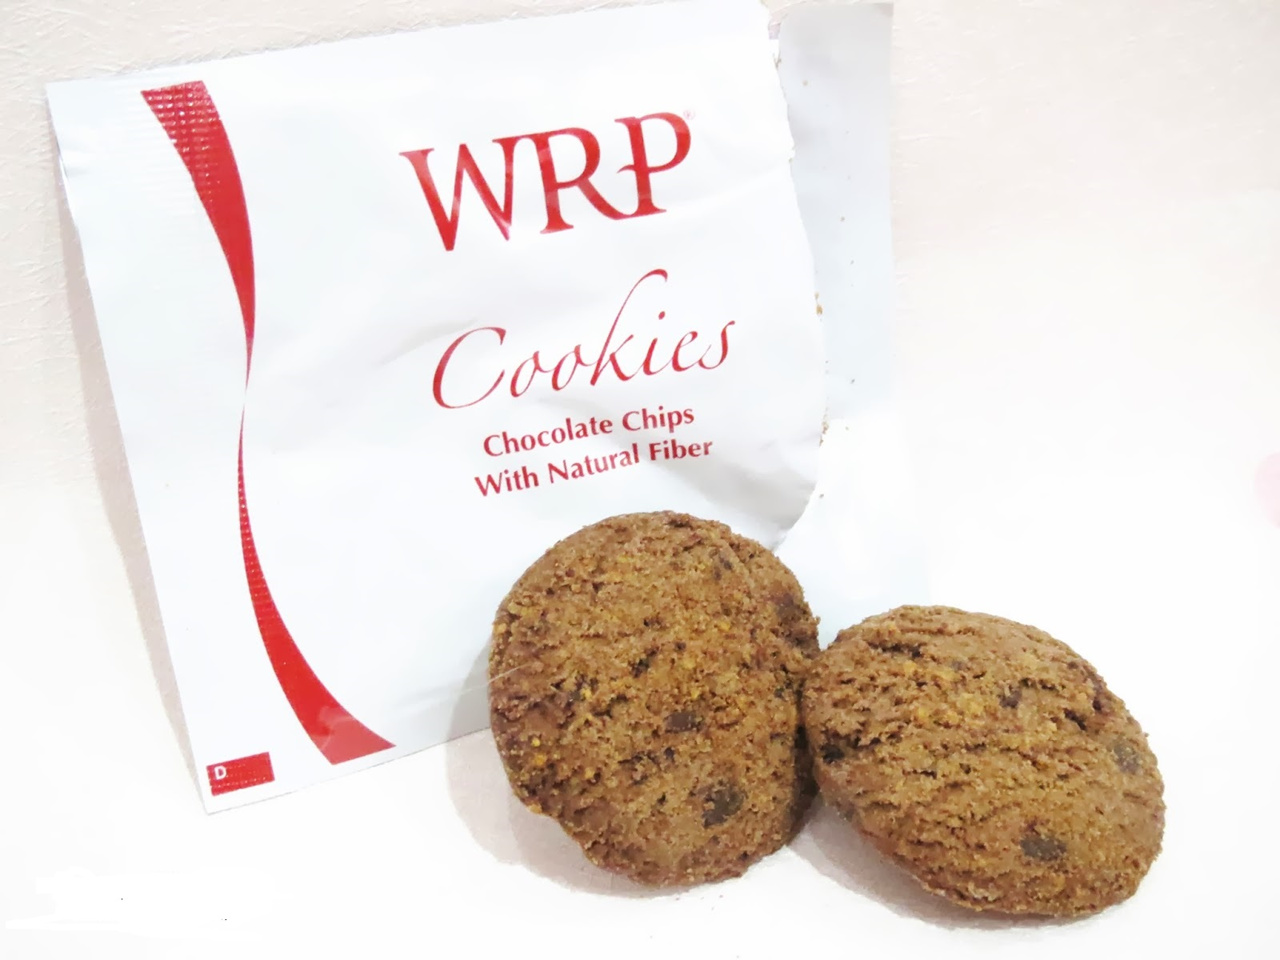 Every Need Want Day Wrp On The Go Strawberry Low Fat 200 Ml Chocolate Cookies 1box X 12sachets 2pcs 6 Days Supply For Tea Time